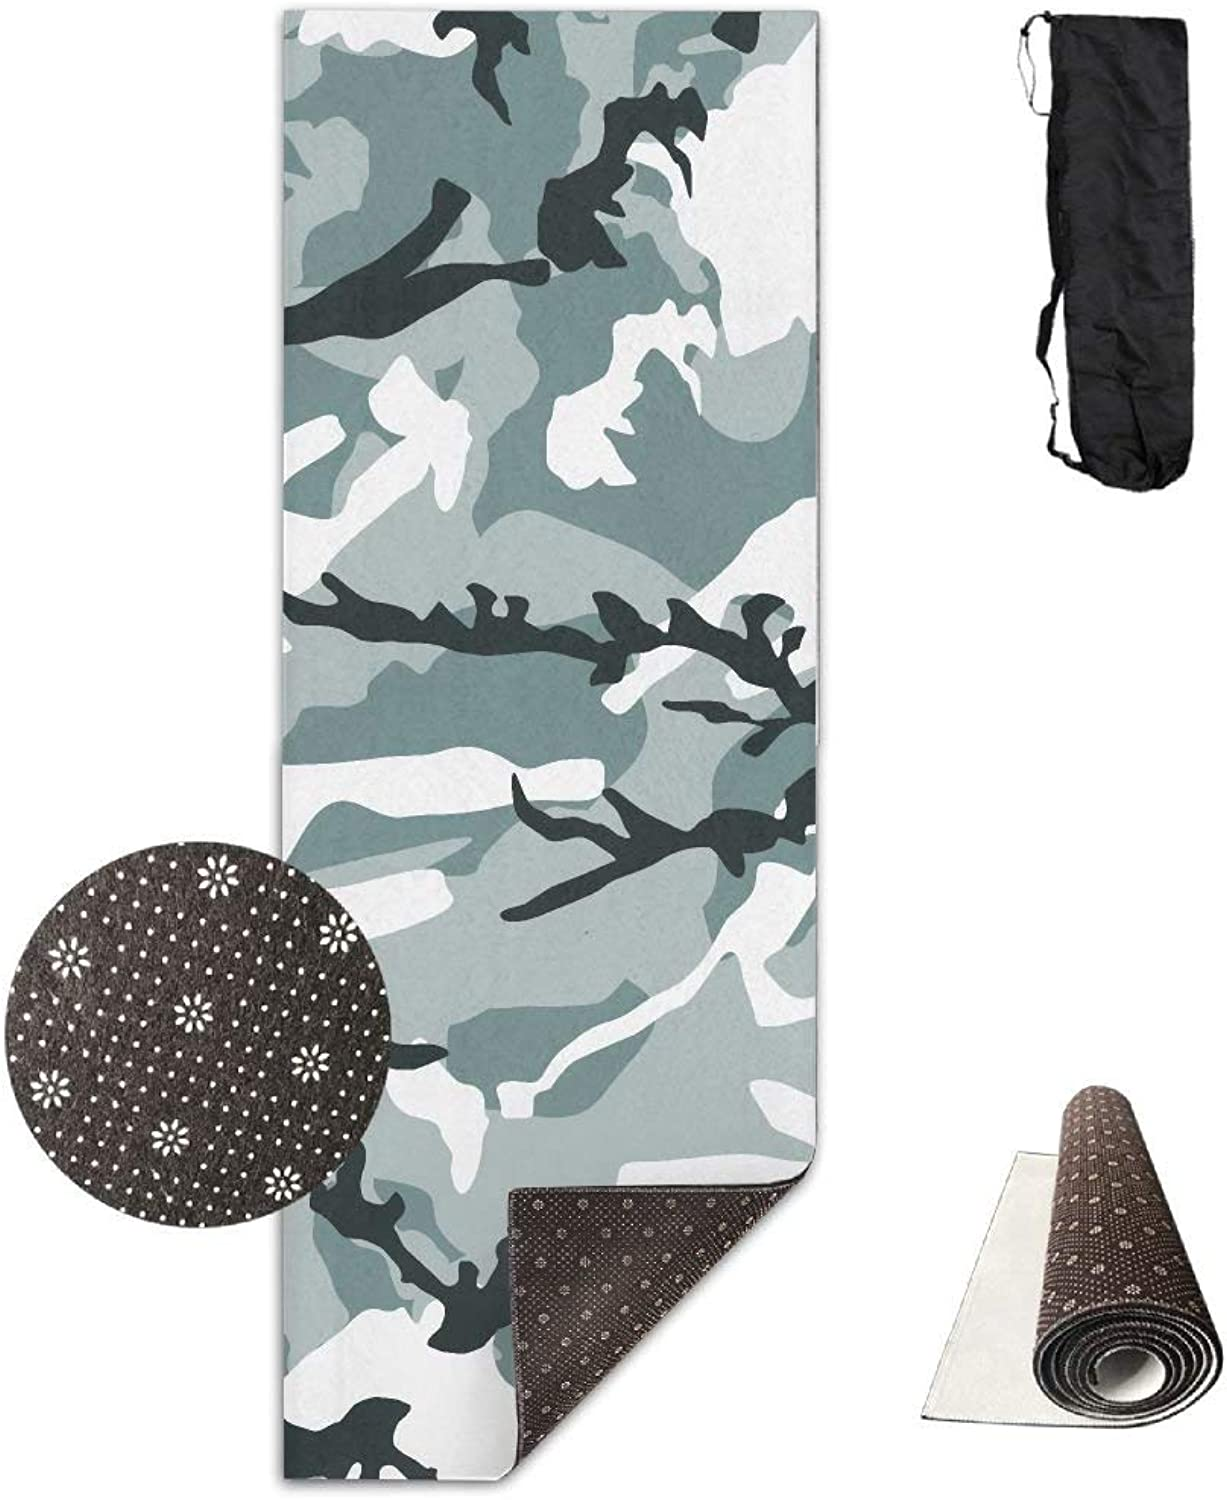 Nature Camouflage Yoga Mat Towel for Bikram Hot Yoga, Yoga and Pilates, Paddle Board Yoga, Sports, Exercise, Fitness Towel